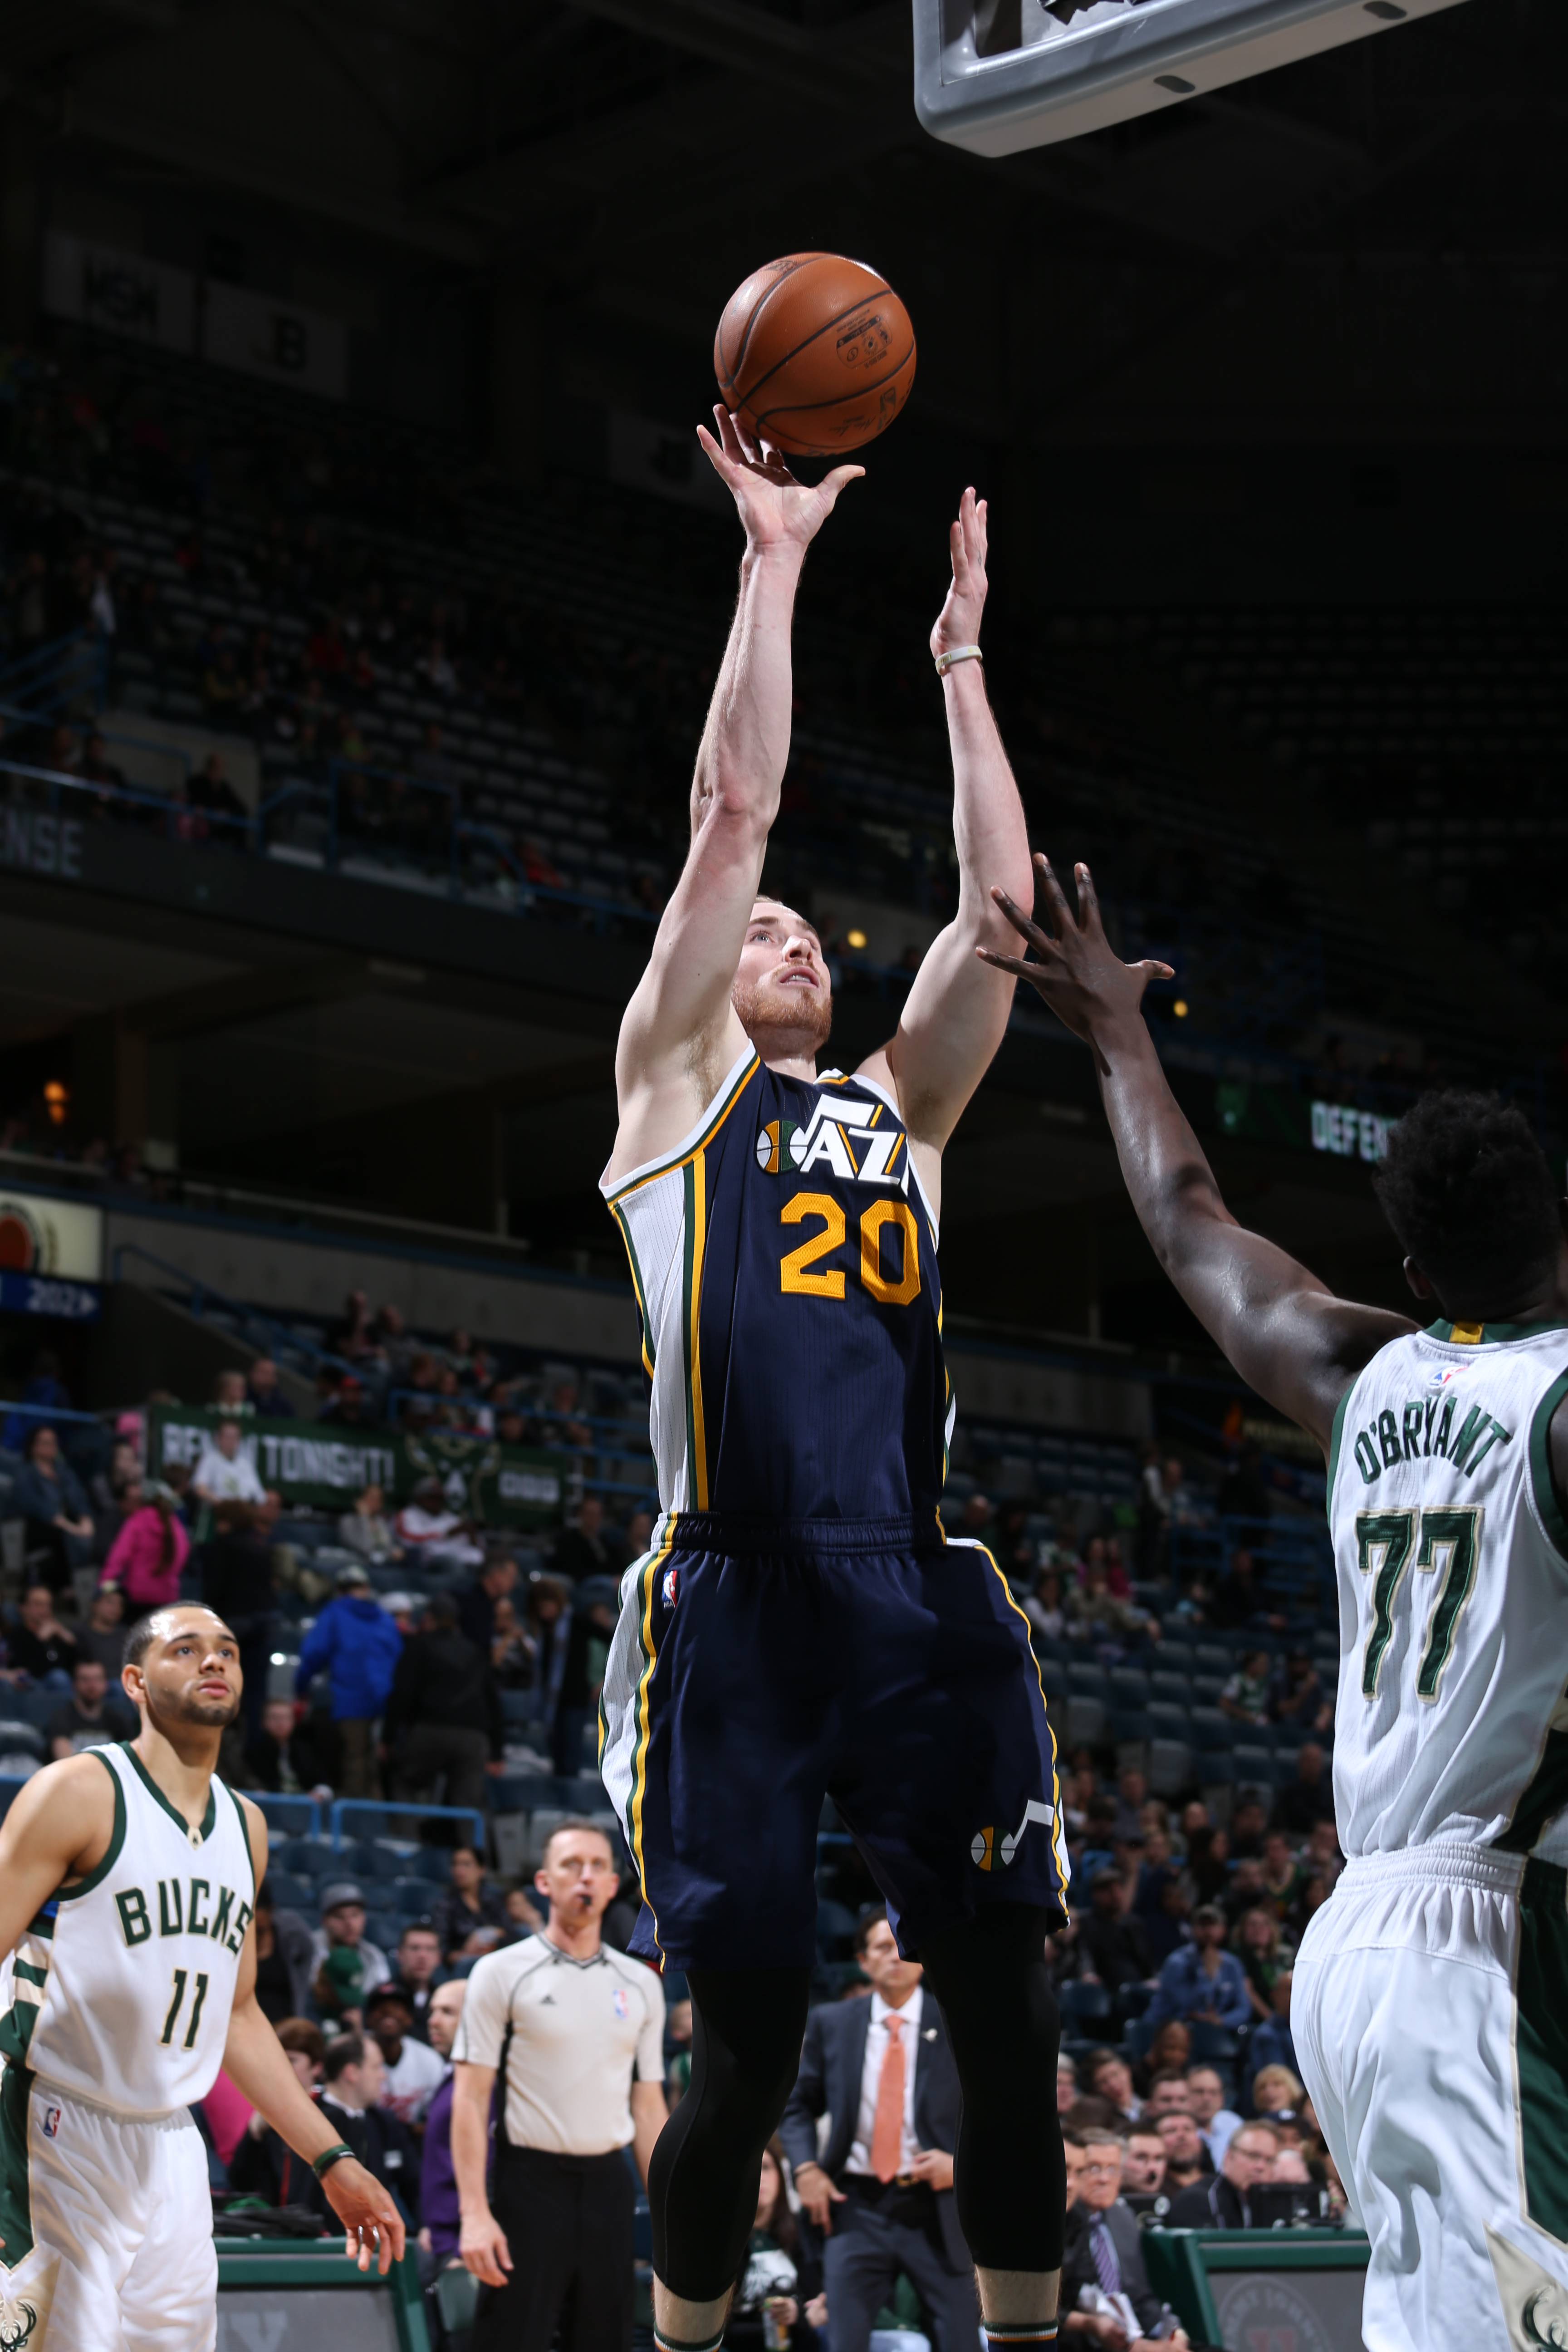 Milwaukee, WI - MARCH 20:  Gordon Hayward #20 of the Utah Jazz shoots the ball against the Milwaukee Bucks on March 20, 2016 at the BMO Harris Bradley Center in Milwaukee, Wisconsin. (Photo by Gary Dineen/NBAE via Getty Images)